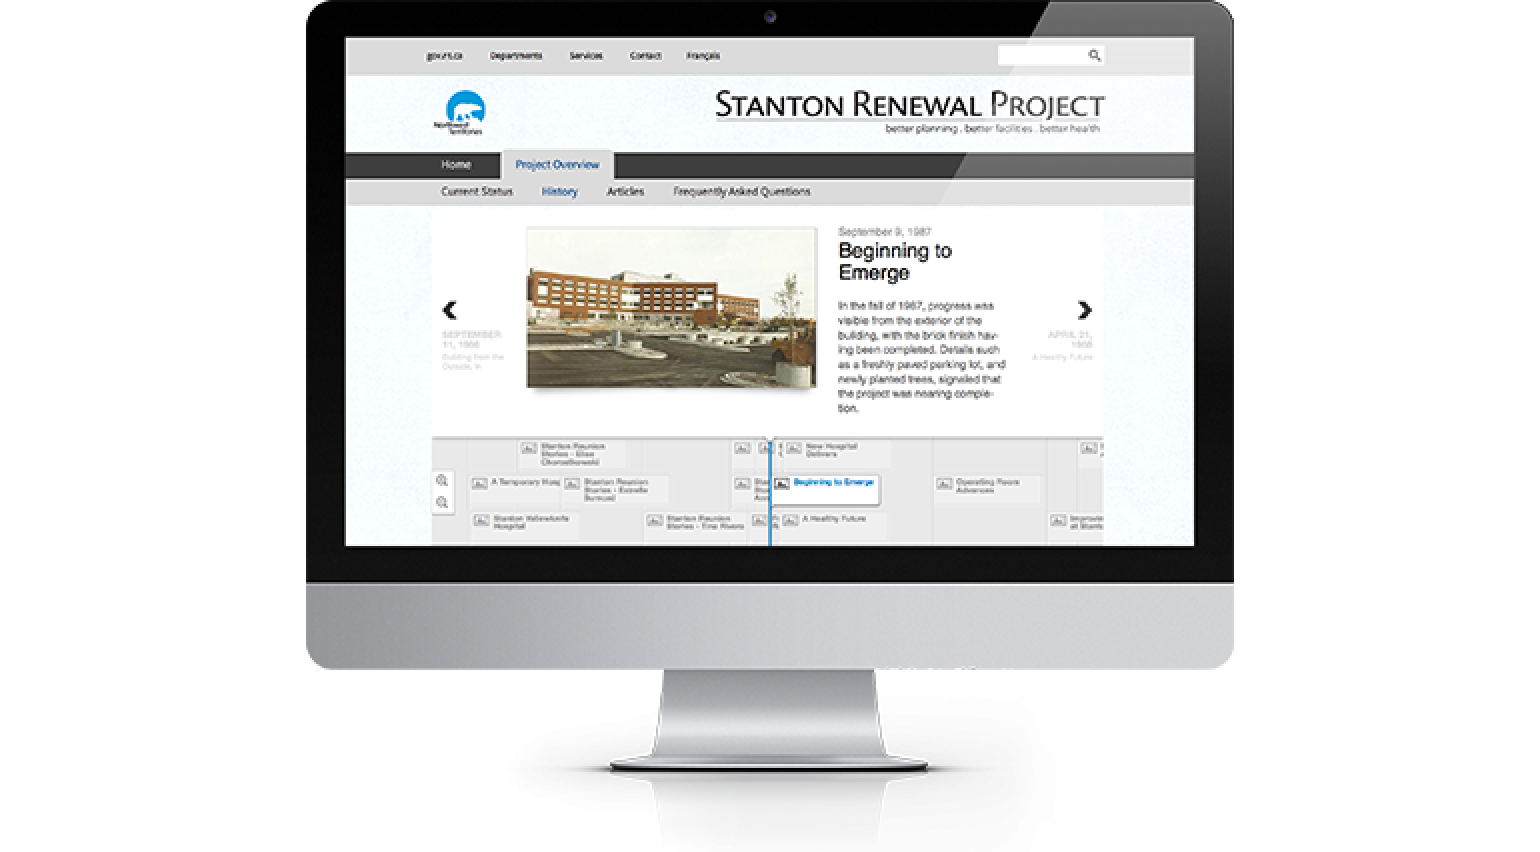 Stanton Renewal Project History